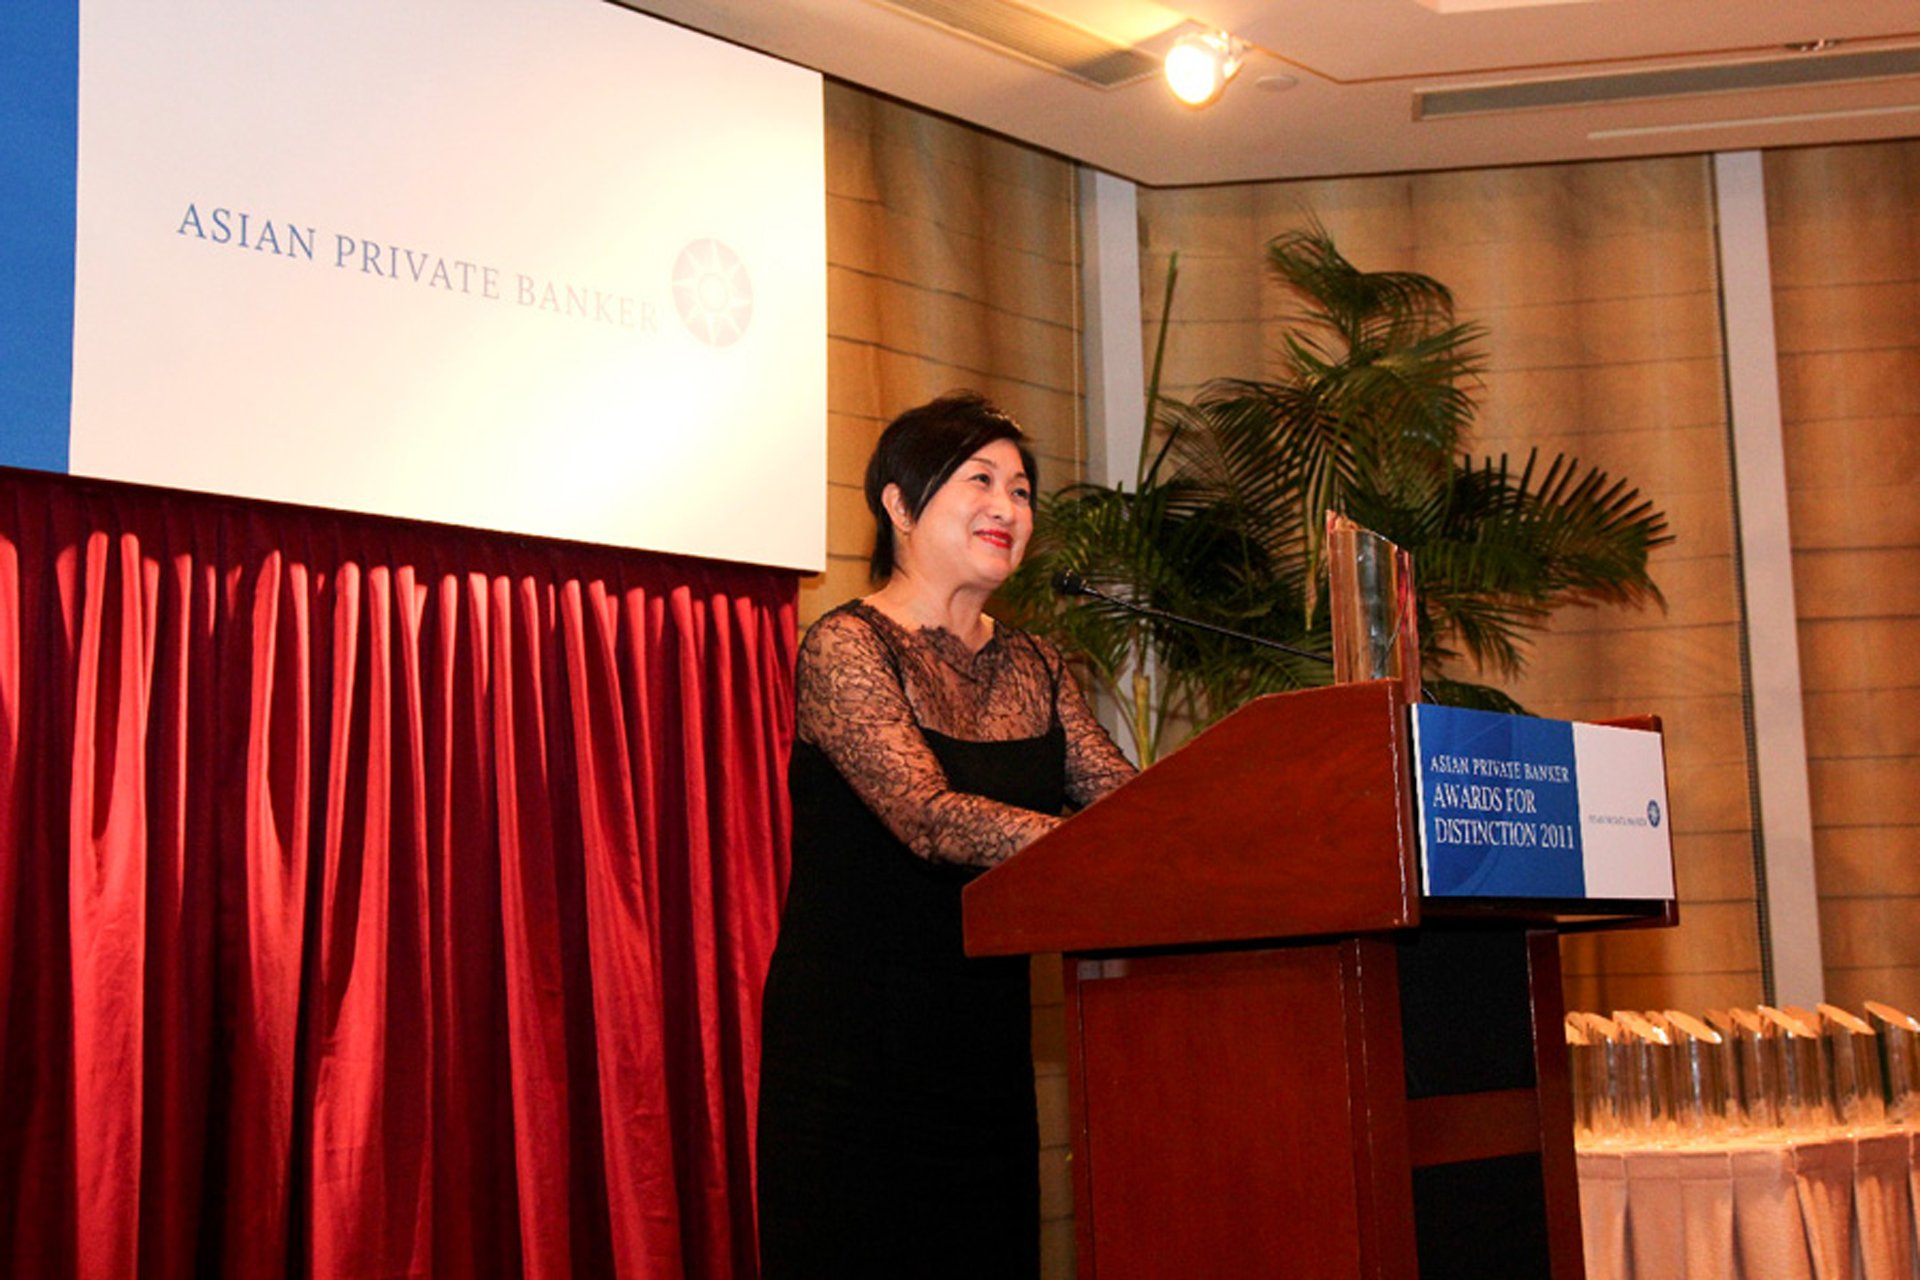 Kathryn-Shih-UBS-Private-Bank-of-the-Year-Acceptance-Speech